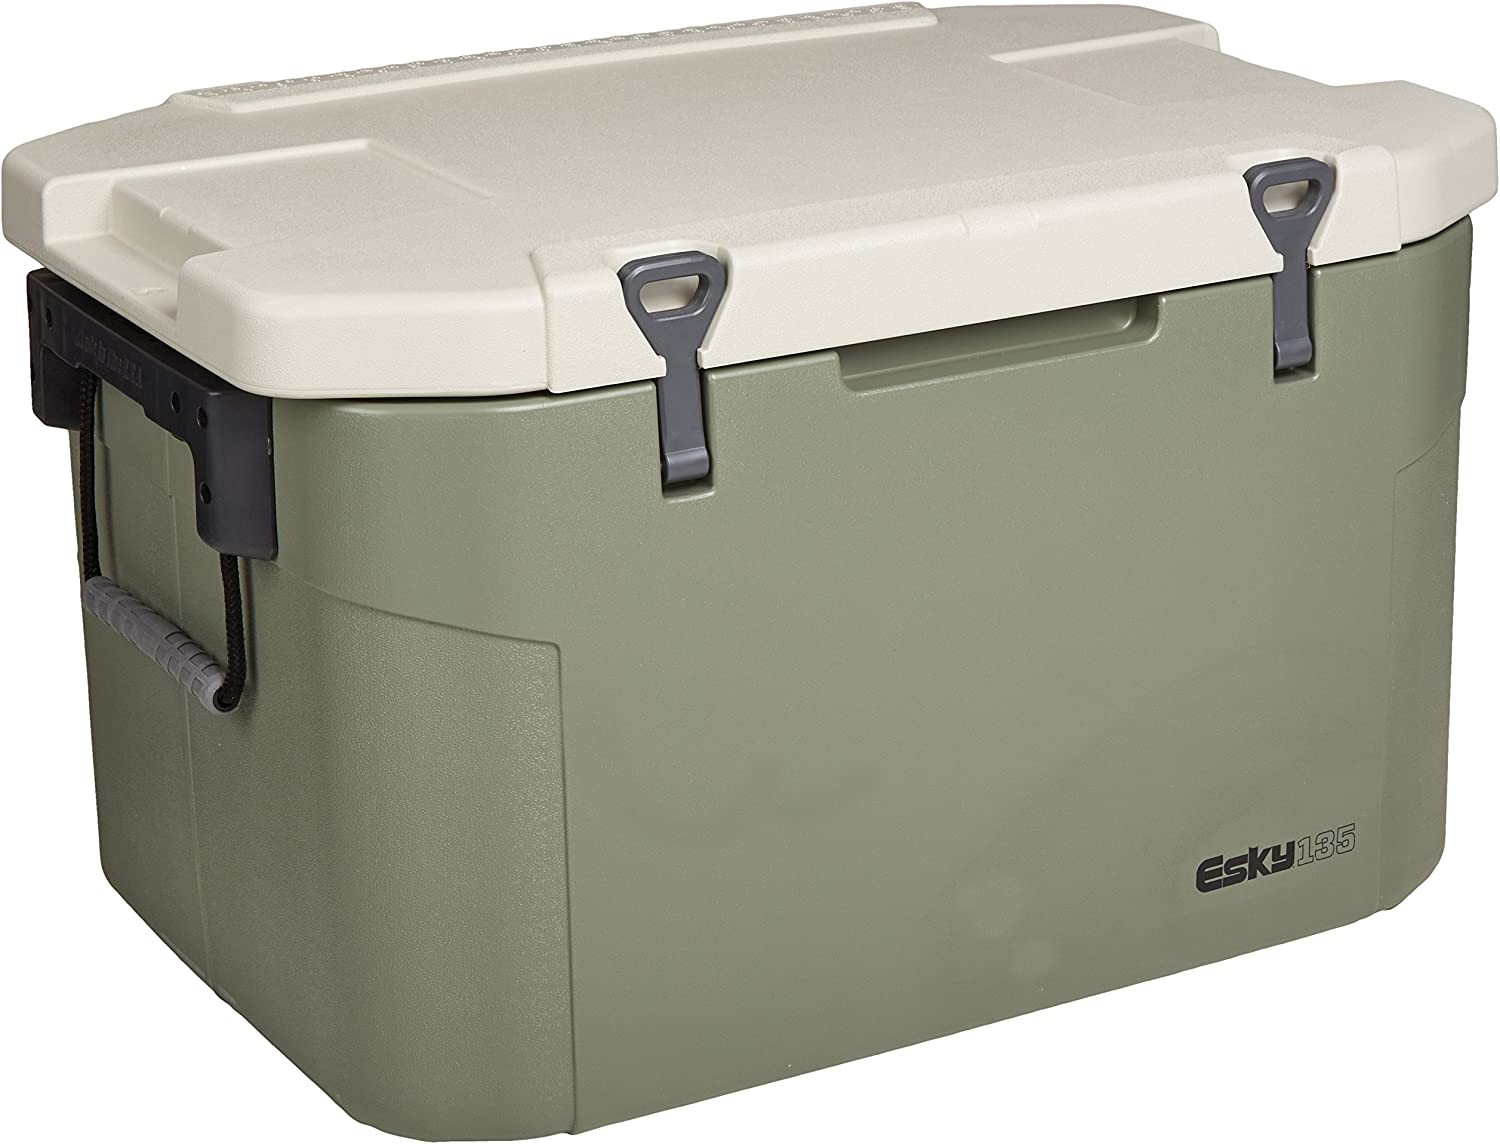 Top 8 Best Camping Coolers Reviews in 2020 6